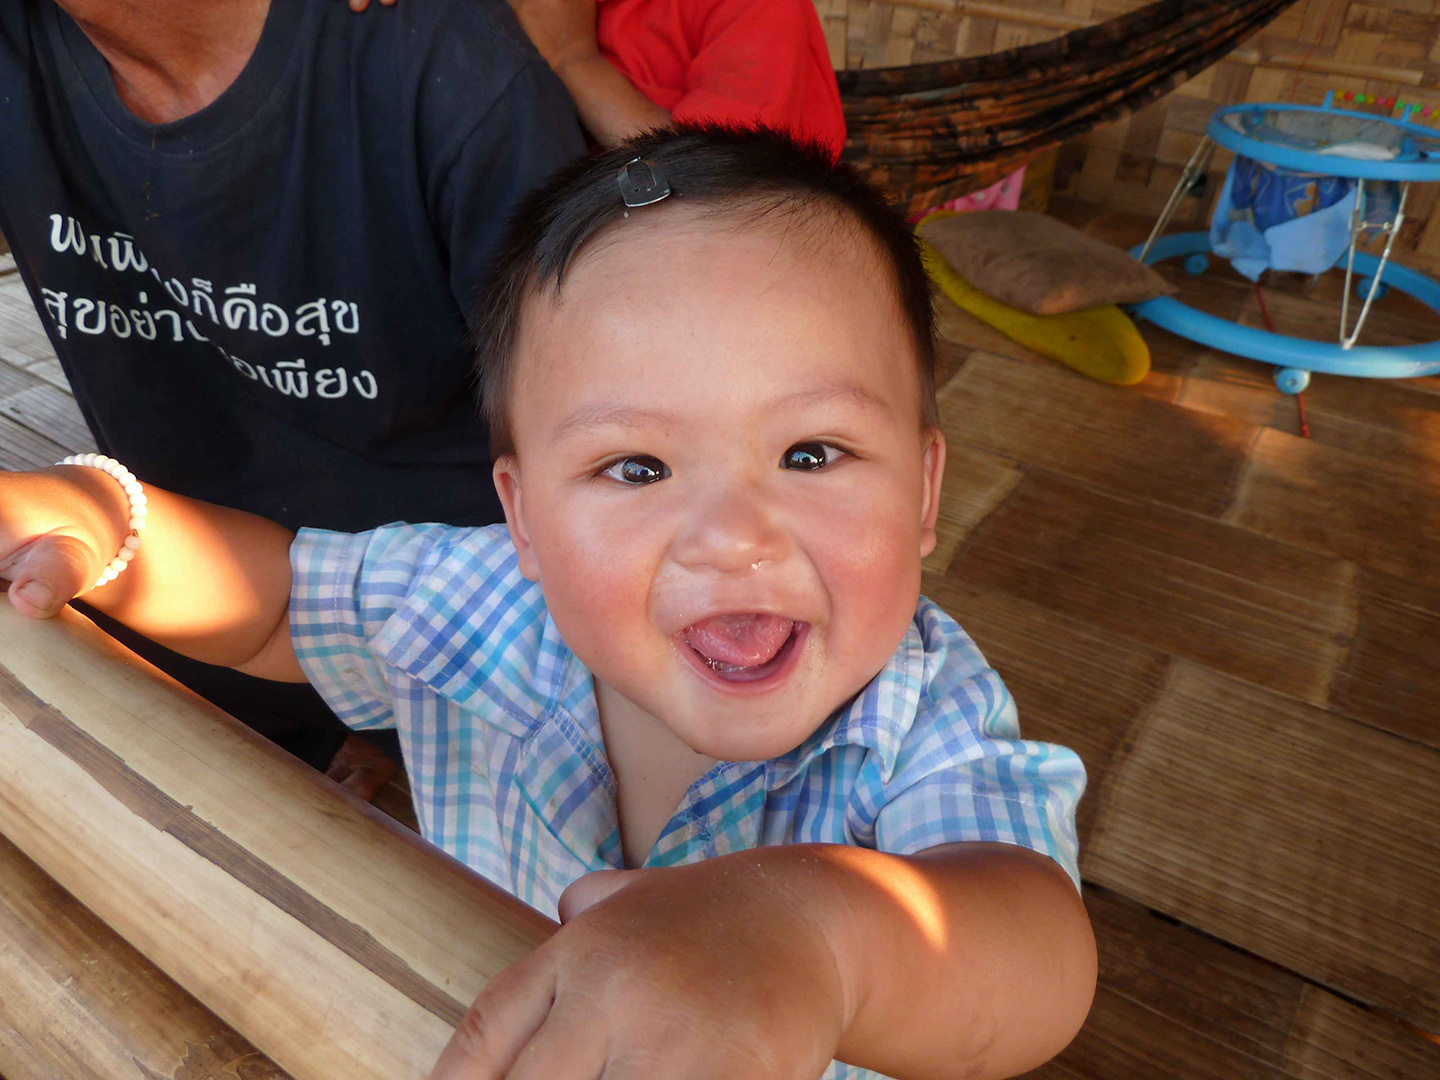 One of the children being cared for (Fung Na community)